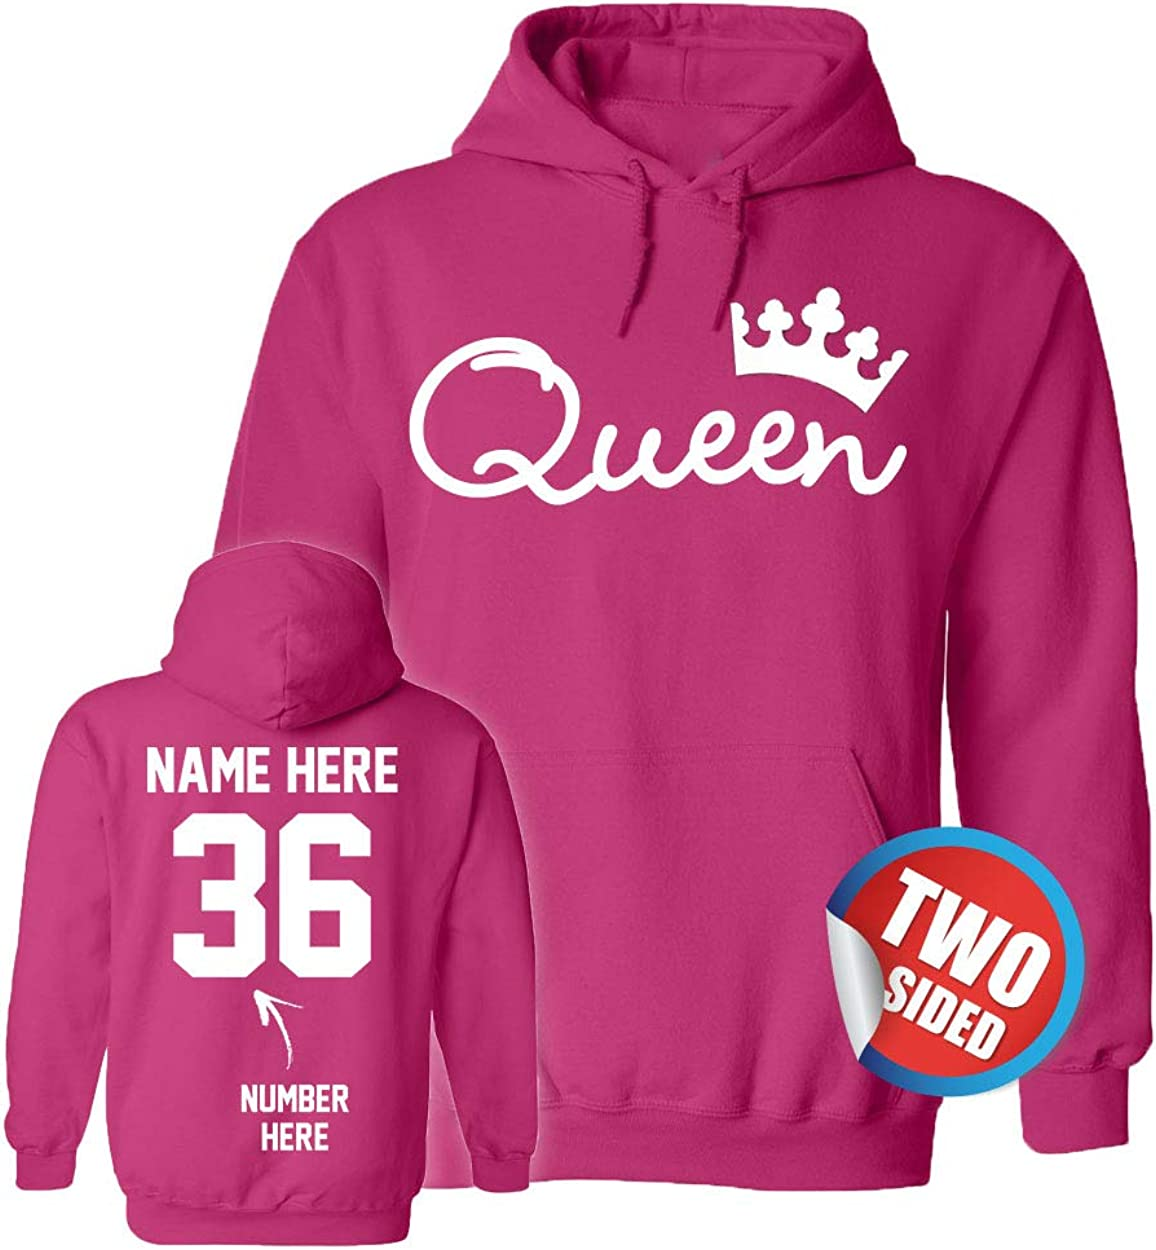 Gifts King Queen Year-end annual account Hoodies - Add Your Matching Name Sw Number Couple